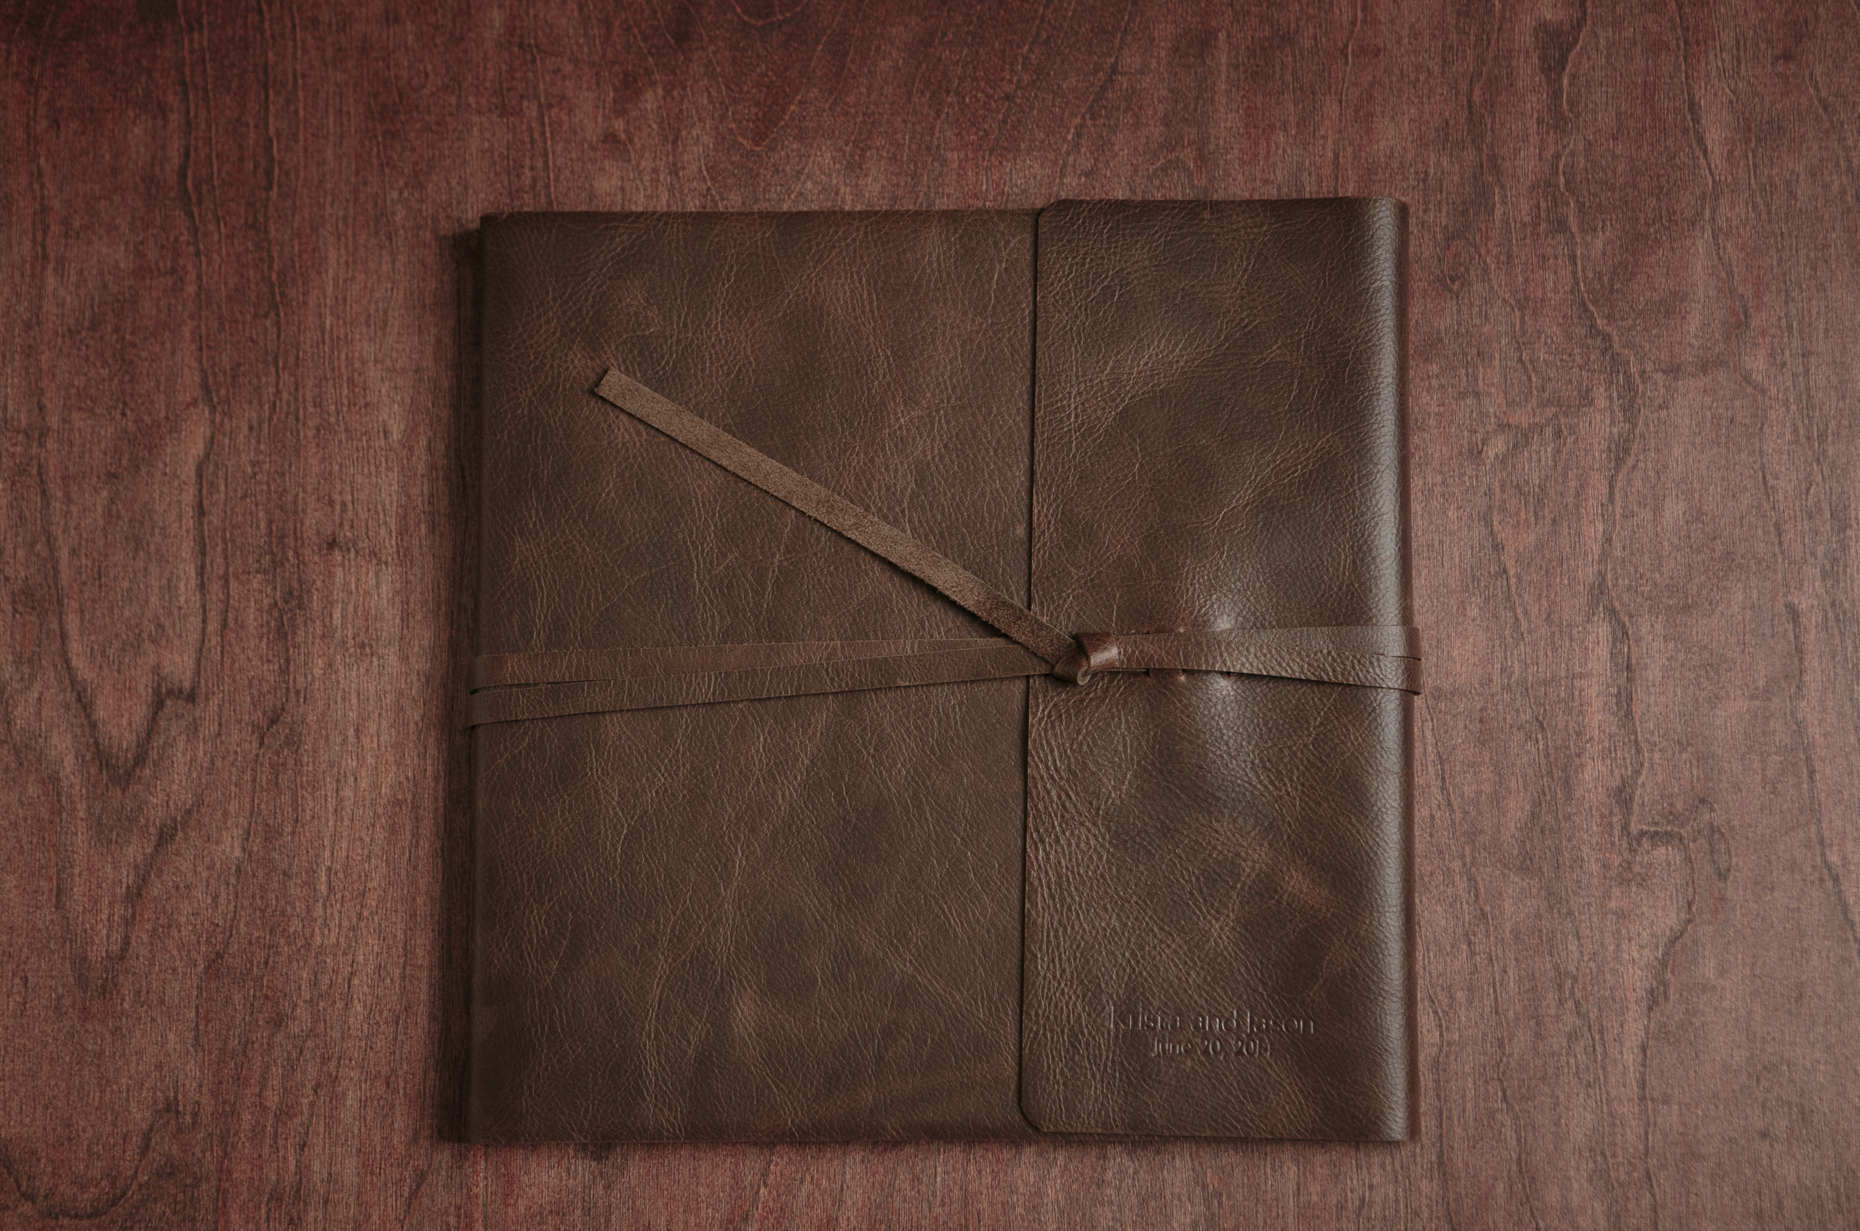 leather bound fine art wedding album textured brown leather cover